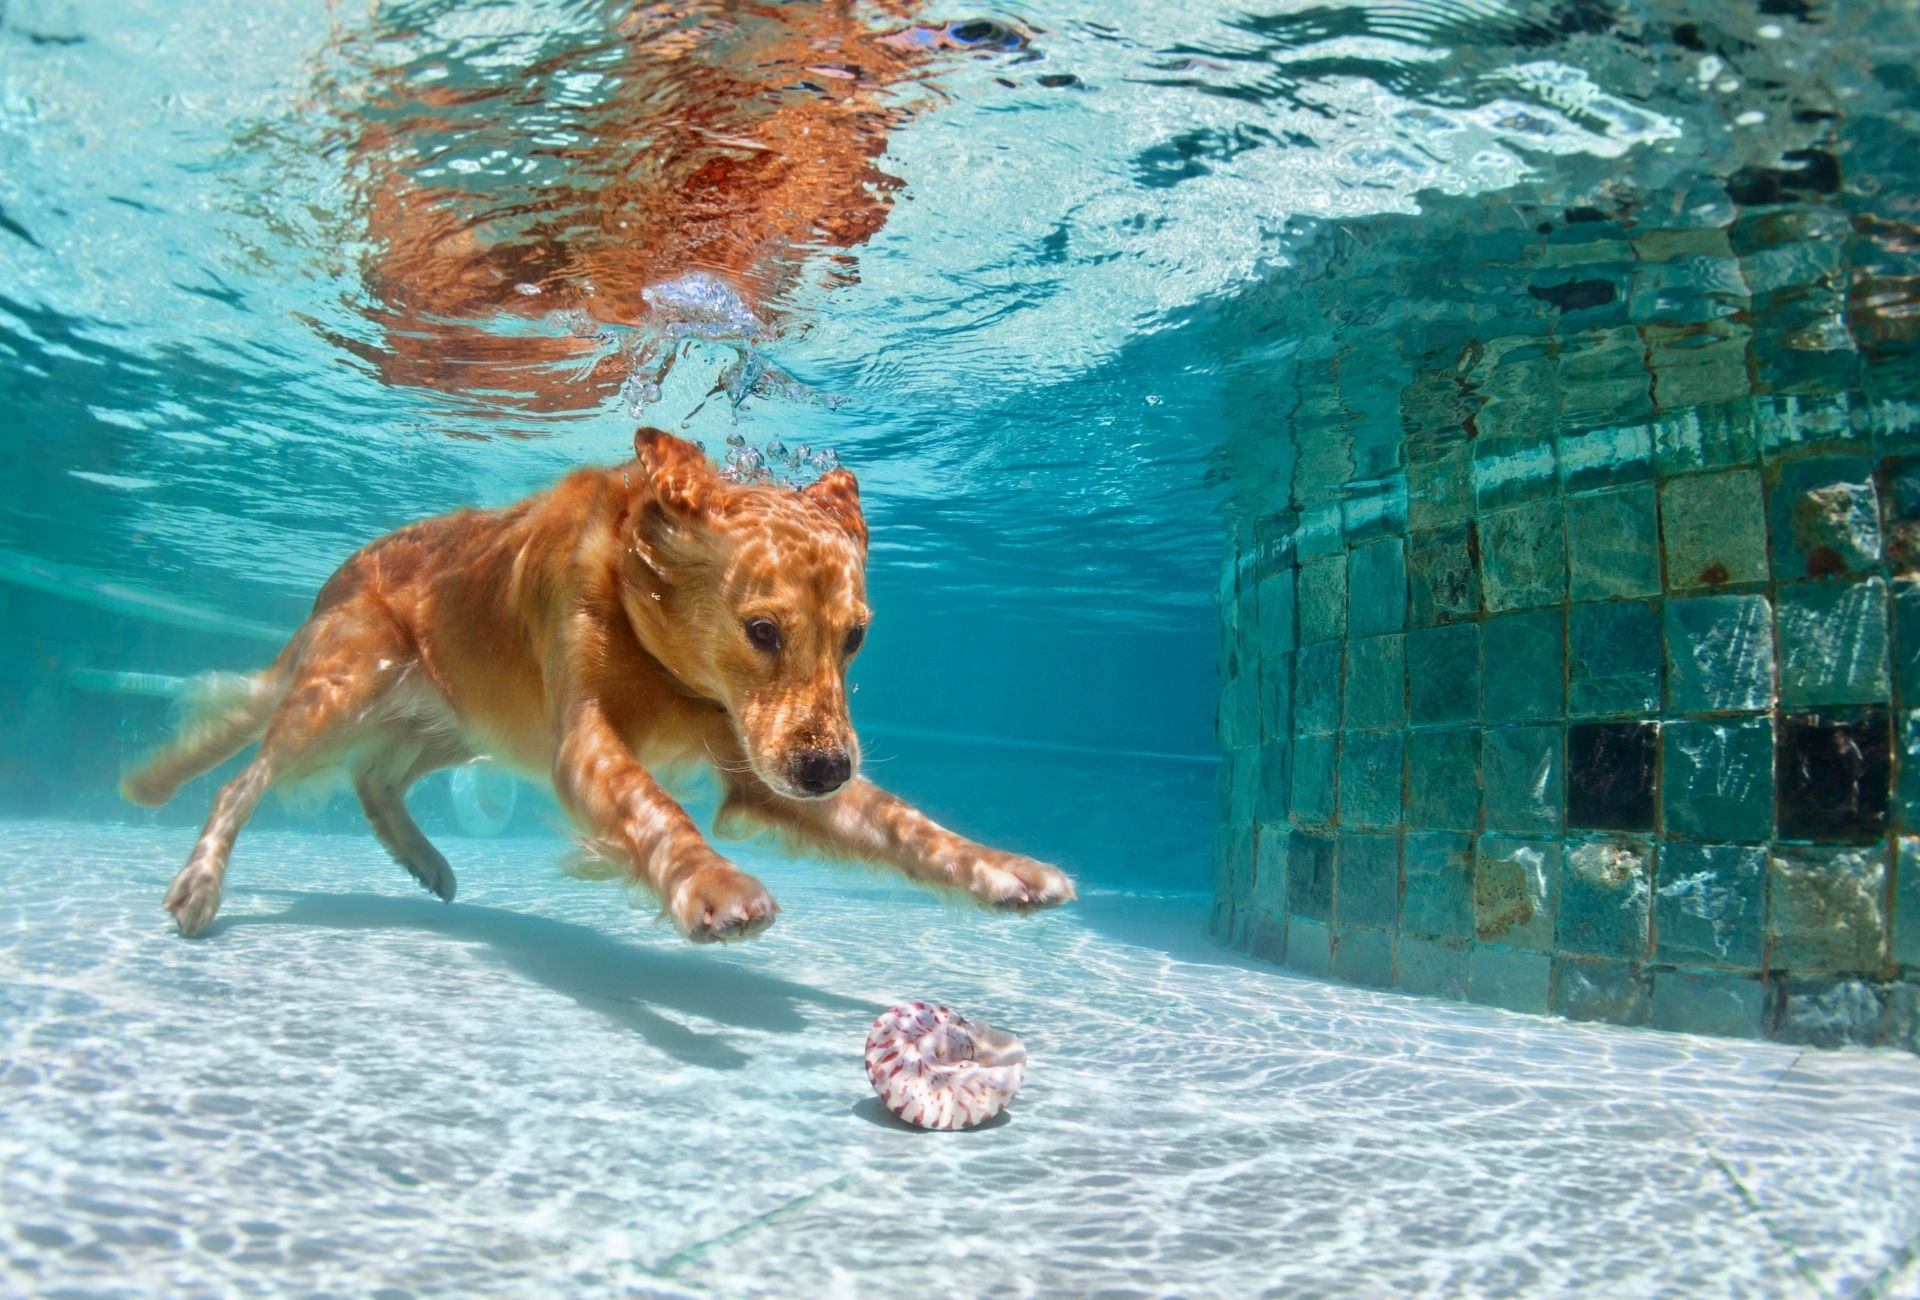 Dog diving in a pool.